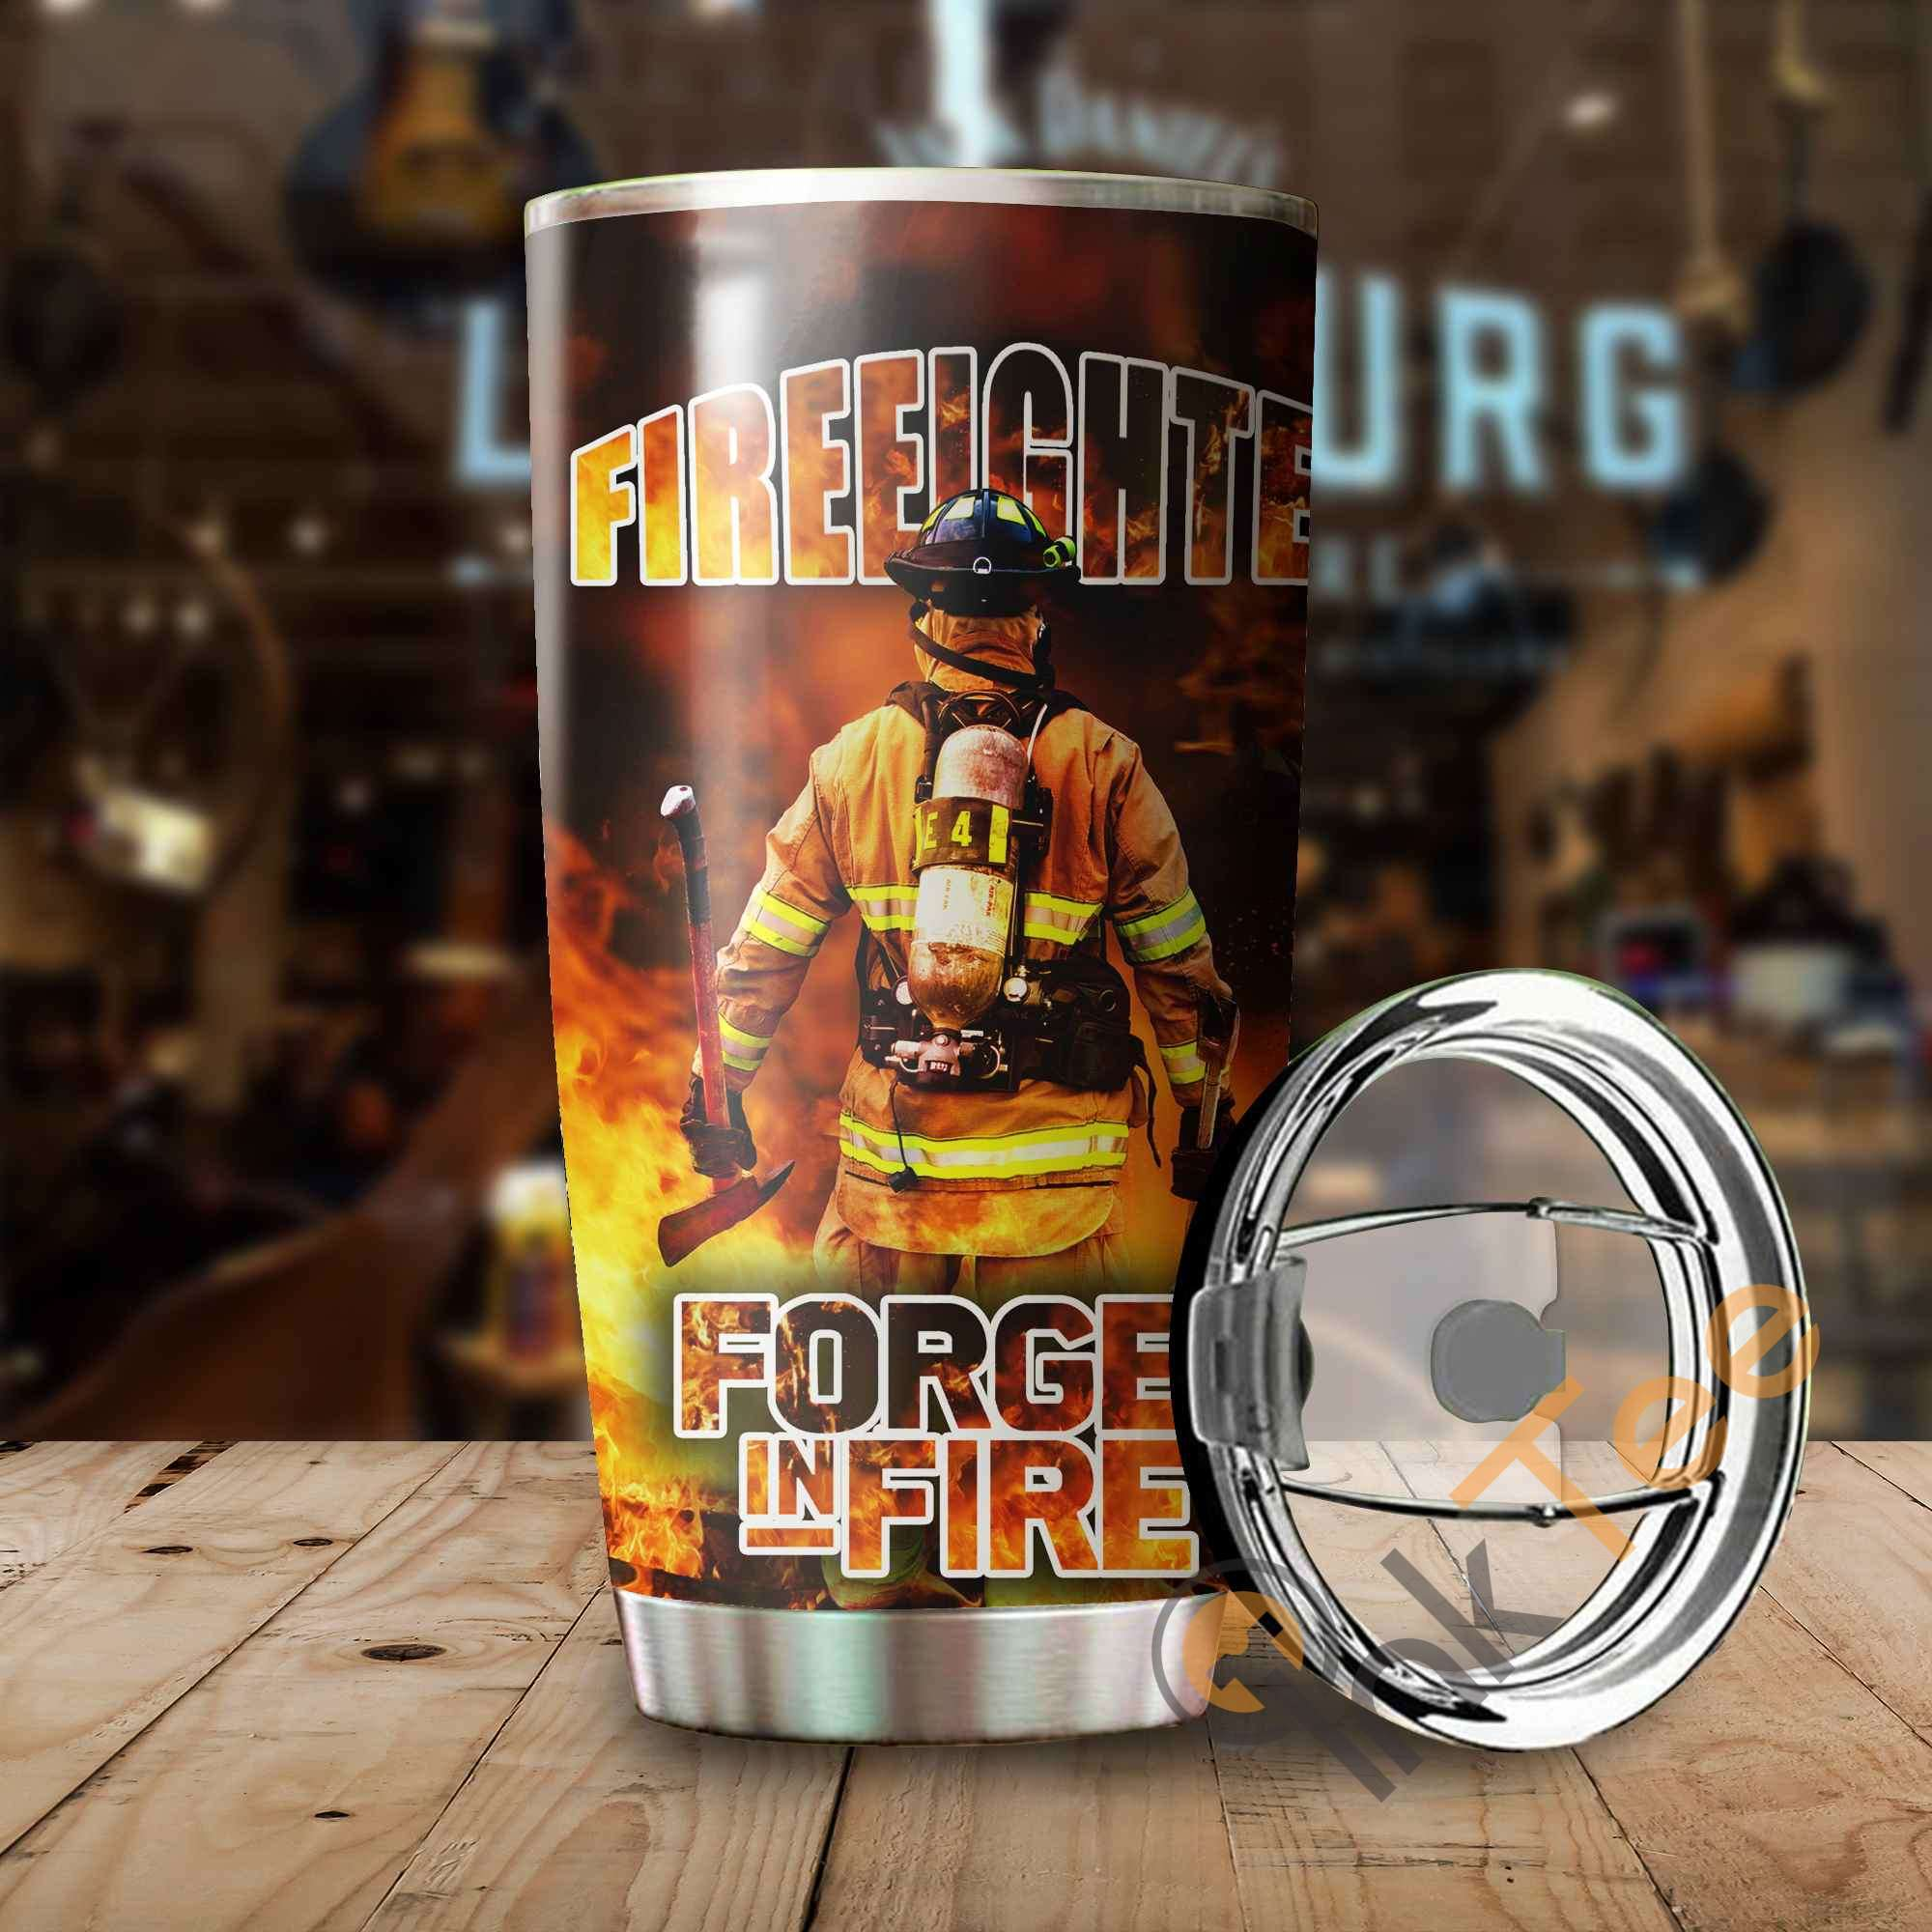 Firefighter Forged In Fire Amazon Best Seller Sku 2759 Stainless Steel Tumbler